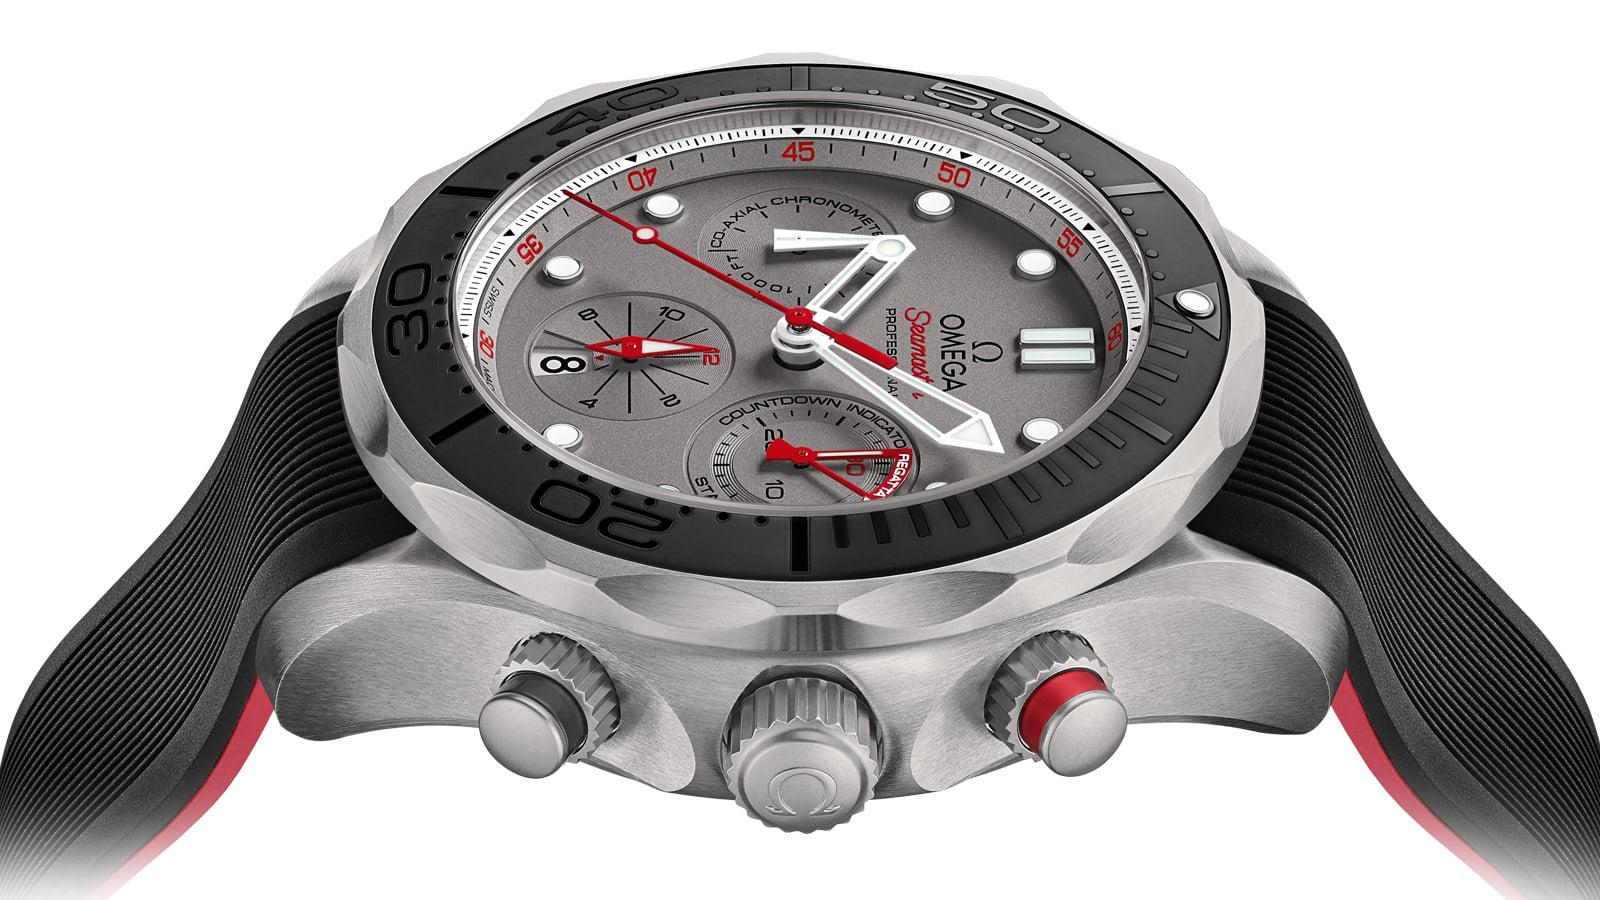 Close-up view of the right side of the Seamaster ETNZ watch and its two pushers. The red one, situated at 2 o'clock controls the chronograph. The black one is situated at 4 o'clock.